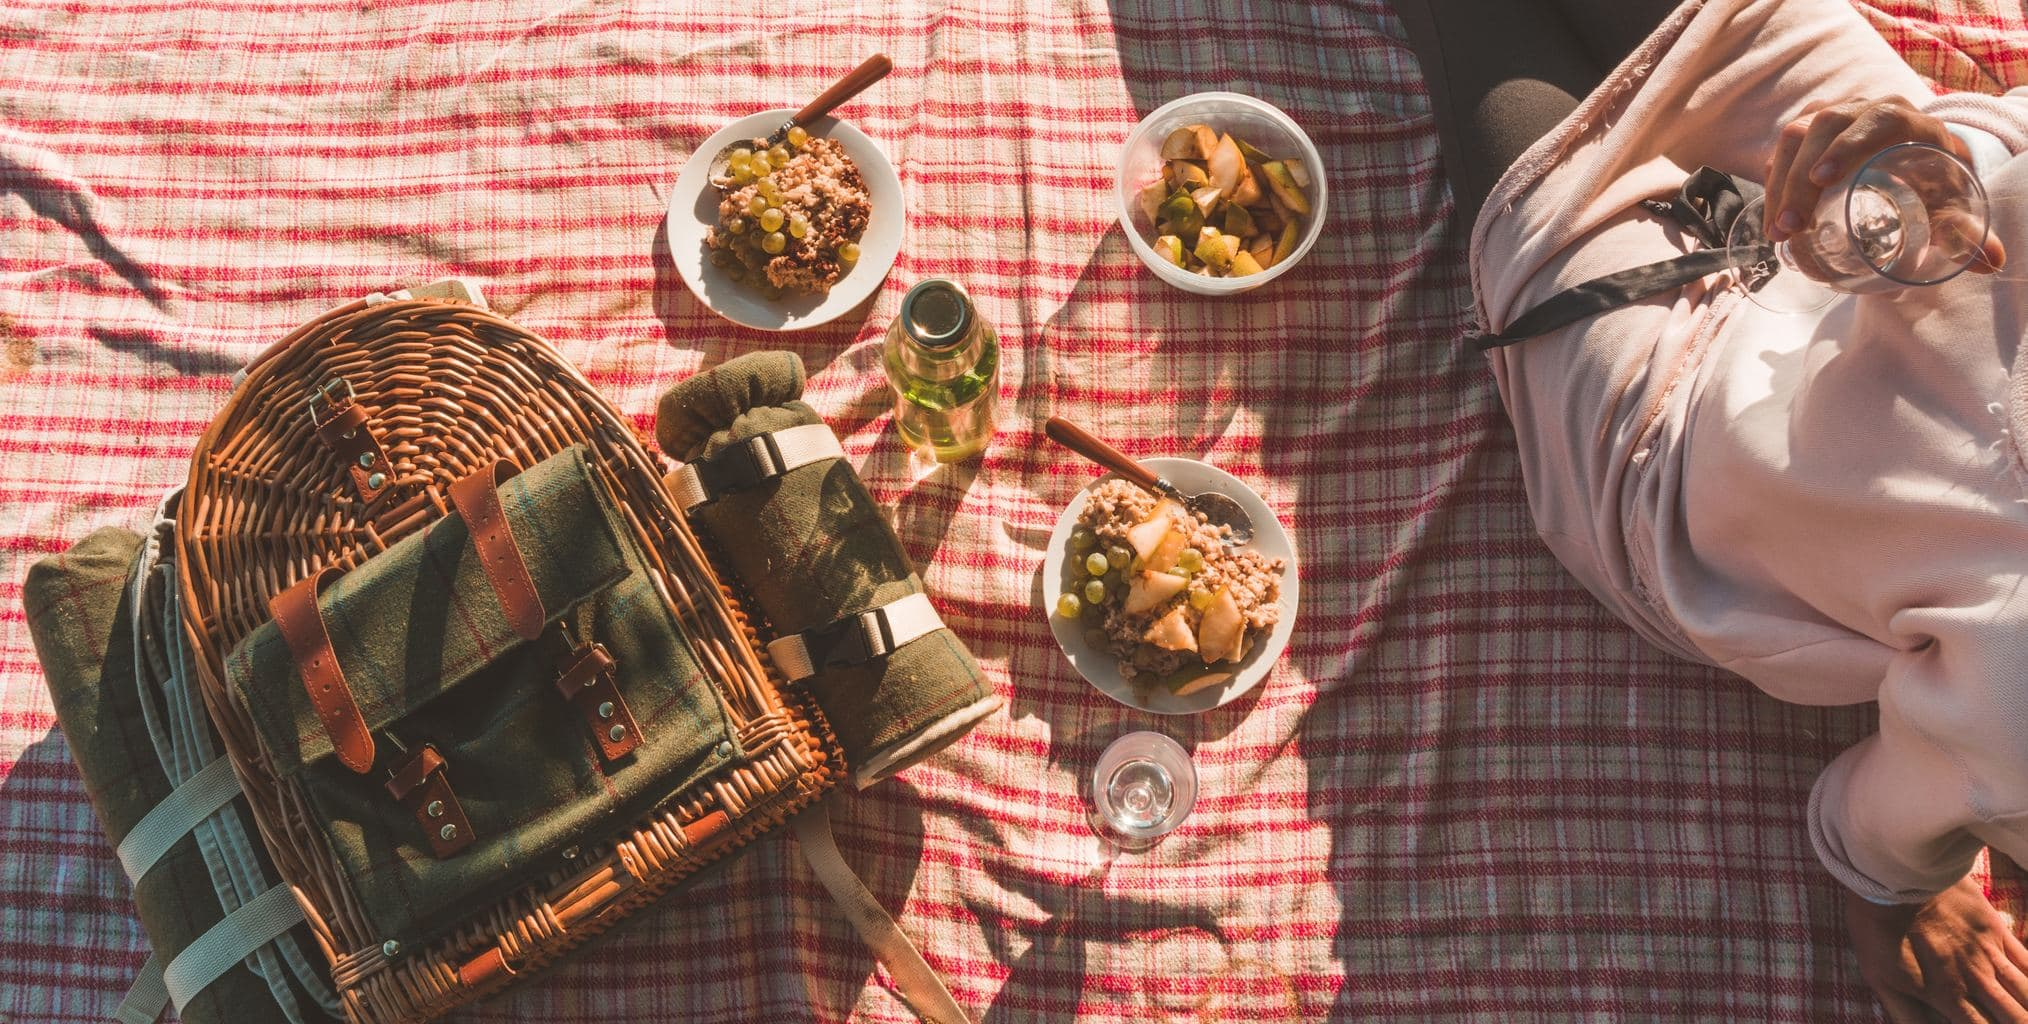 picnic, outdoors, lunch